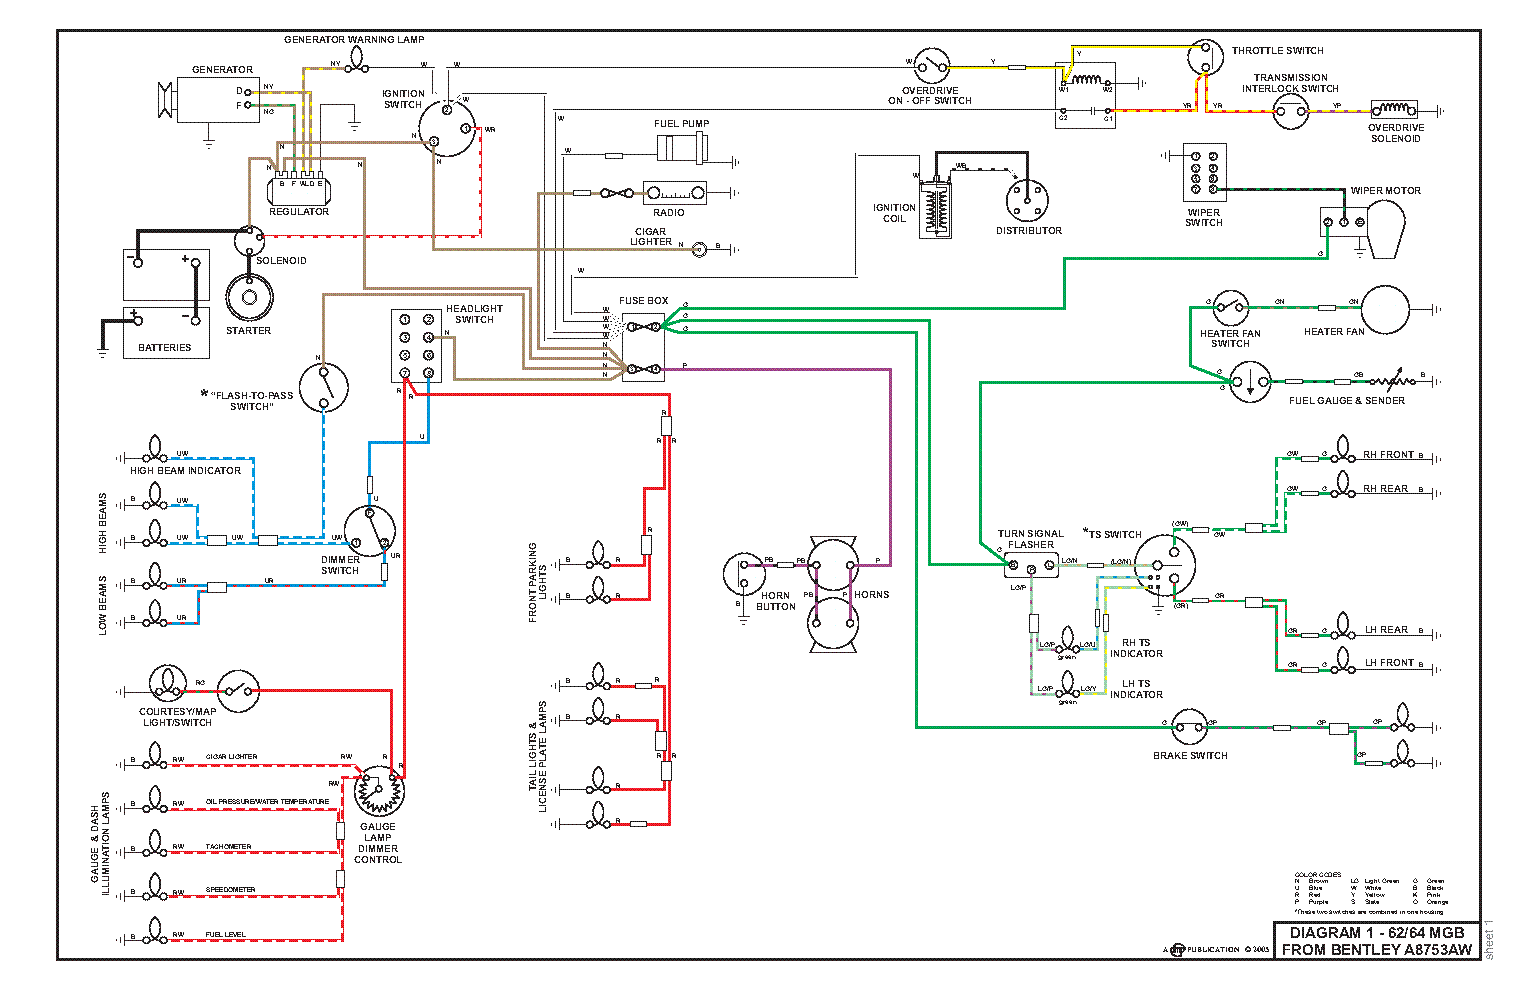 bentley_mg_b_car_wiring_diagrams.pdf_1 free automotive wiring diagrams free plymouth wiring diagrams Ford Ignition Switch Wiring Diagram at mifinder.co